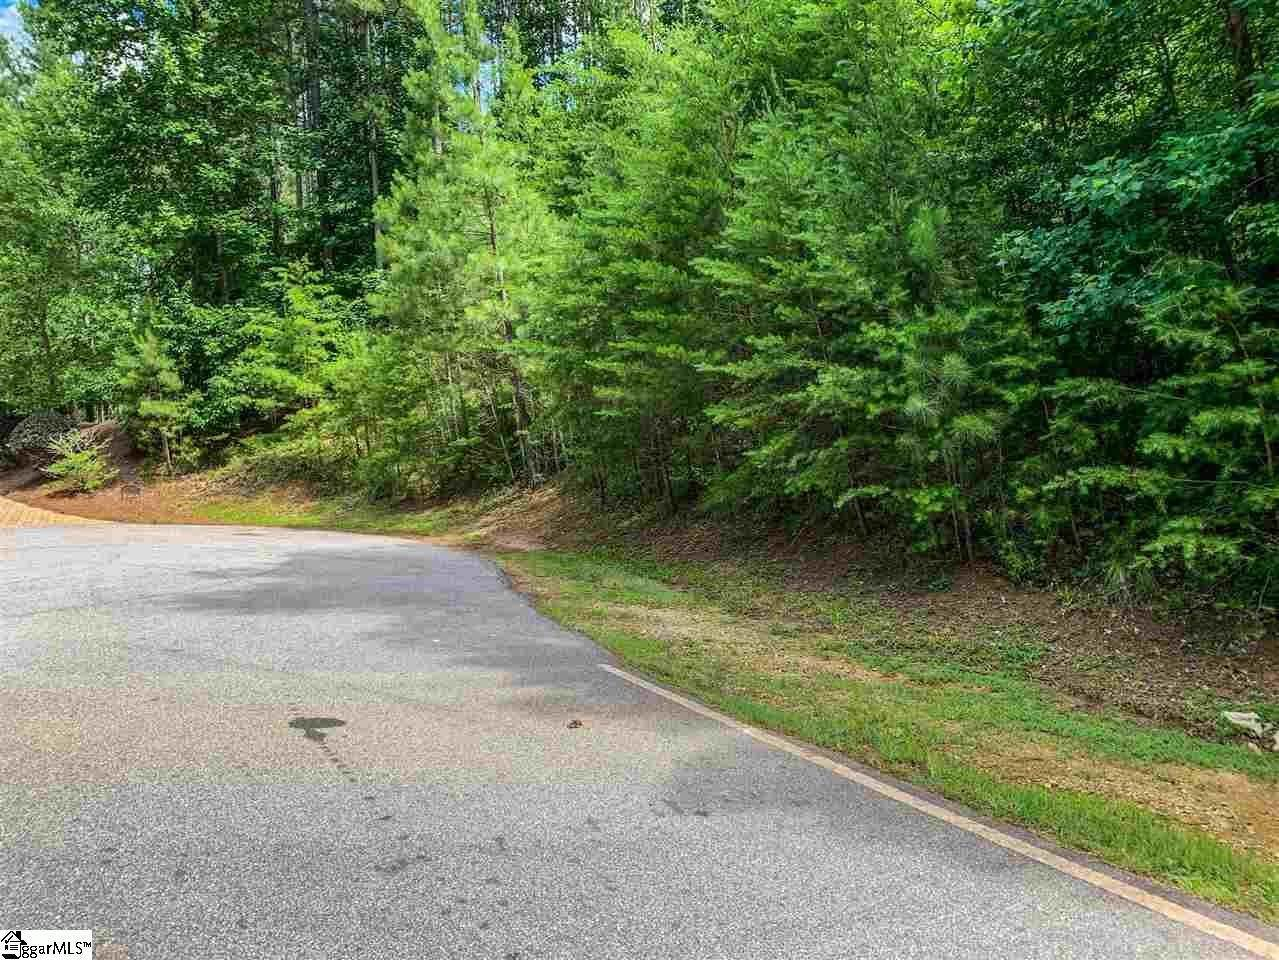 6. Residential Lot for Sale at The Cliffs At Keowee Springs, Six Mile, SC 29682